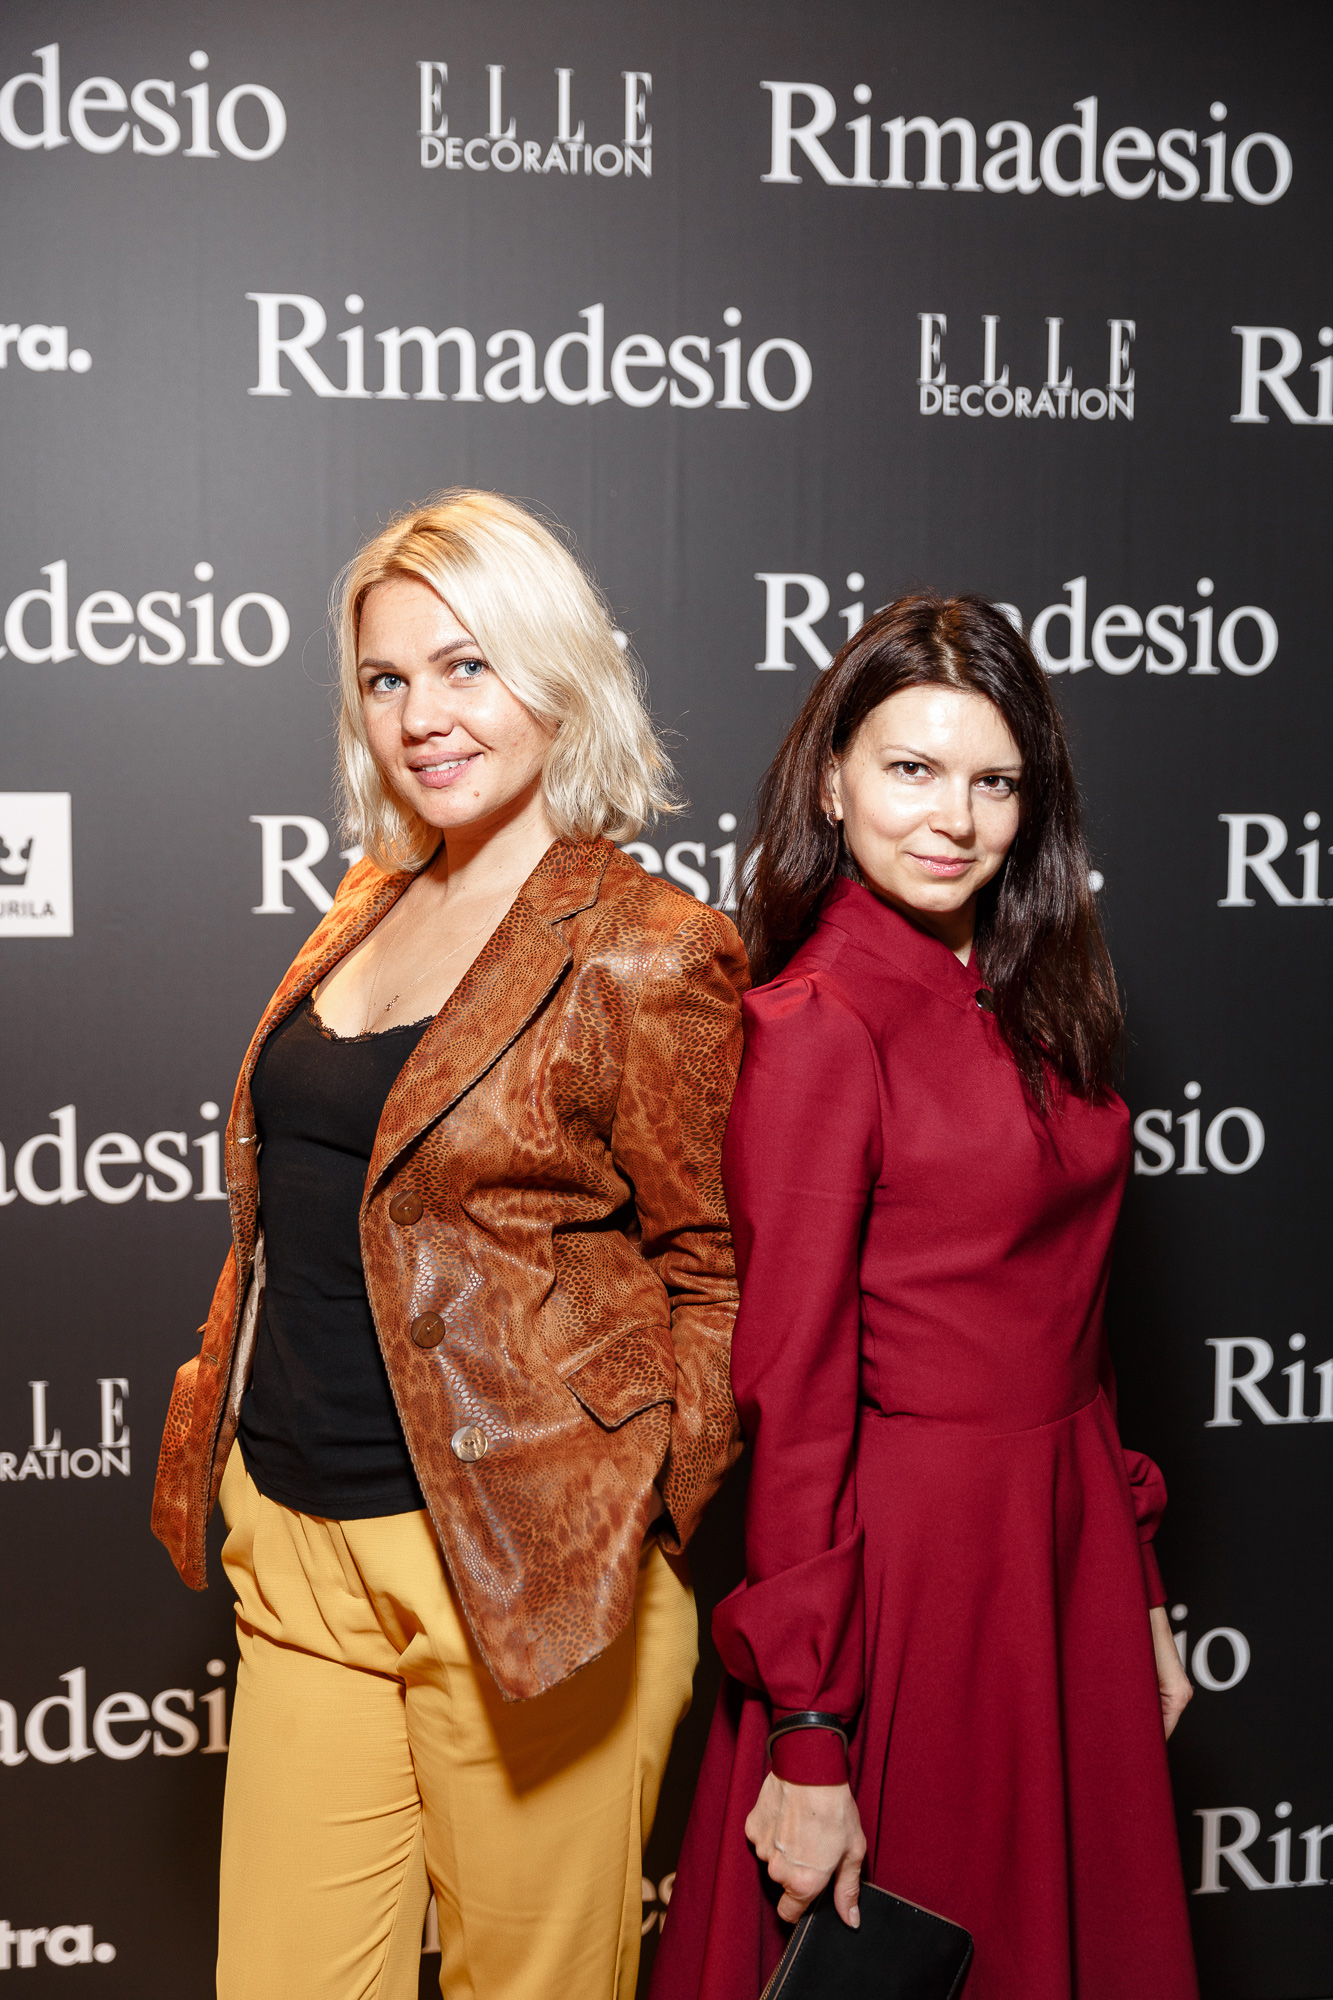 rimadesio-moscow-148